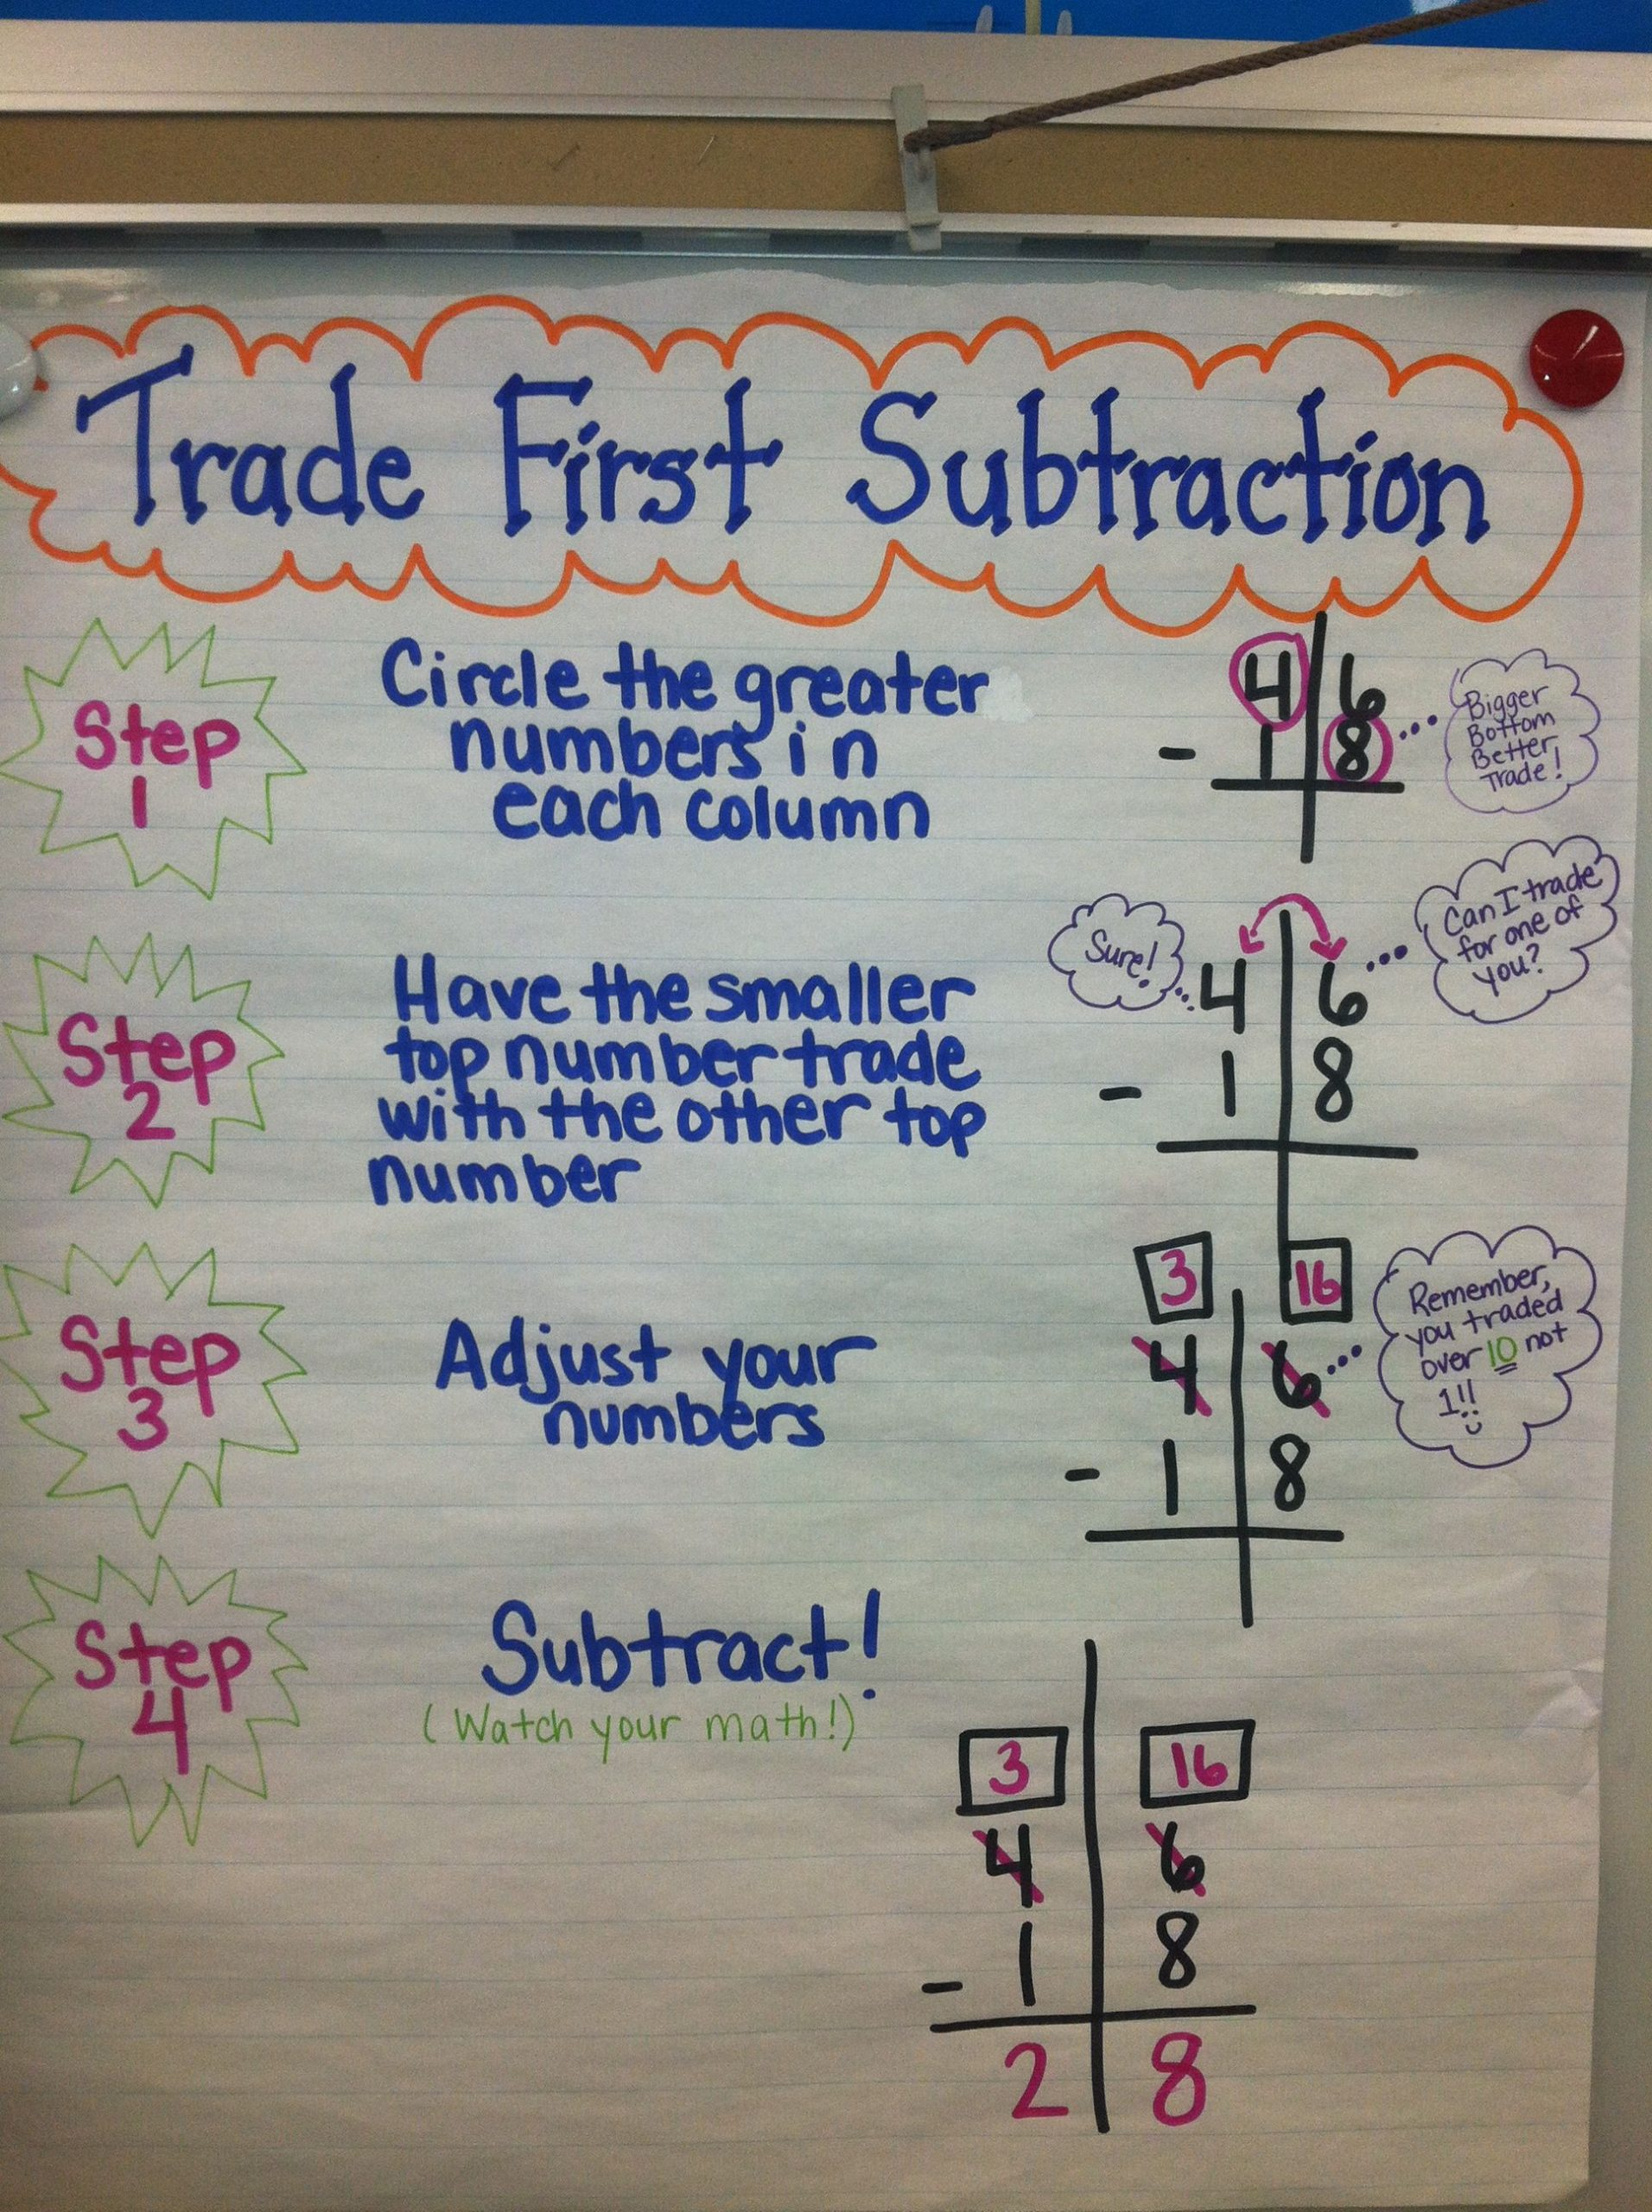 Trade First Subtraction Worksheet Trade First Subtraction